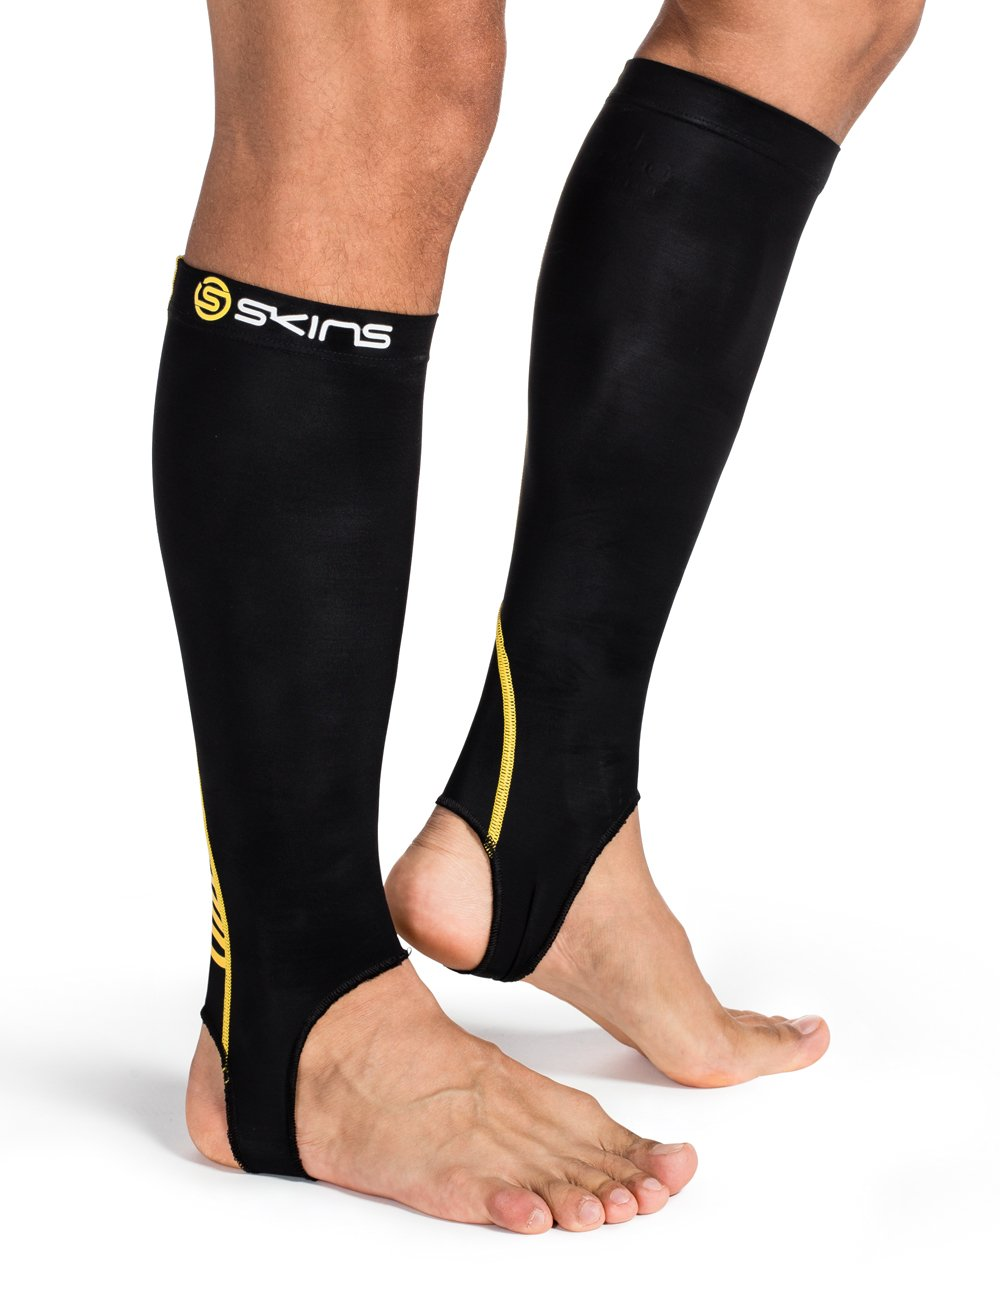 Skins Compression Unisex Calf Tights with Stirrup Black/Yellow Black, Size:L B59052077